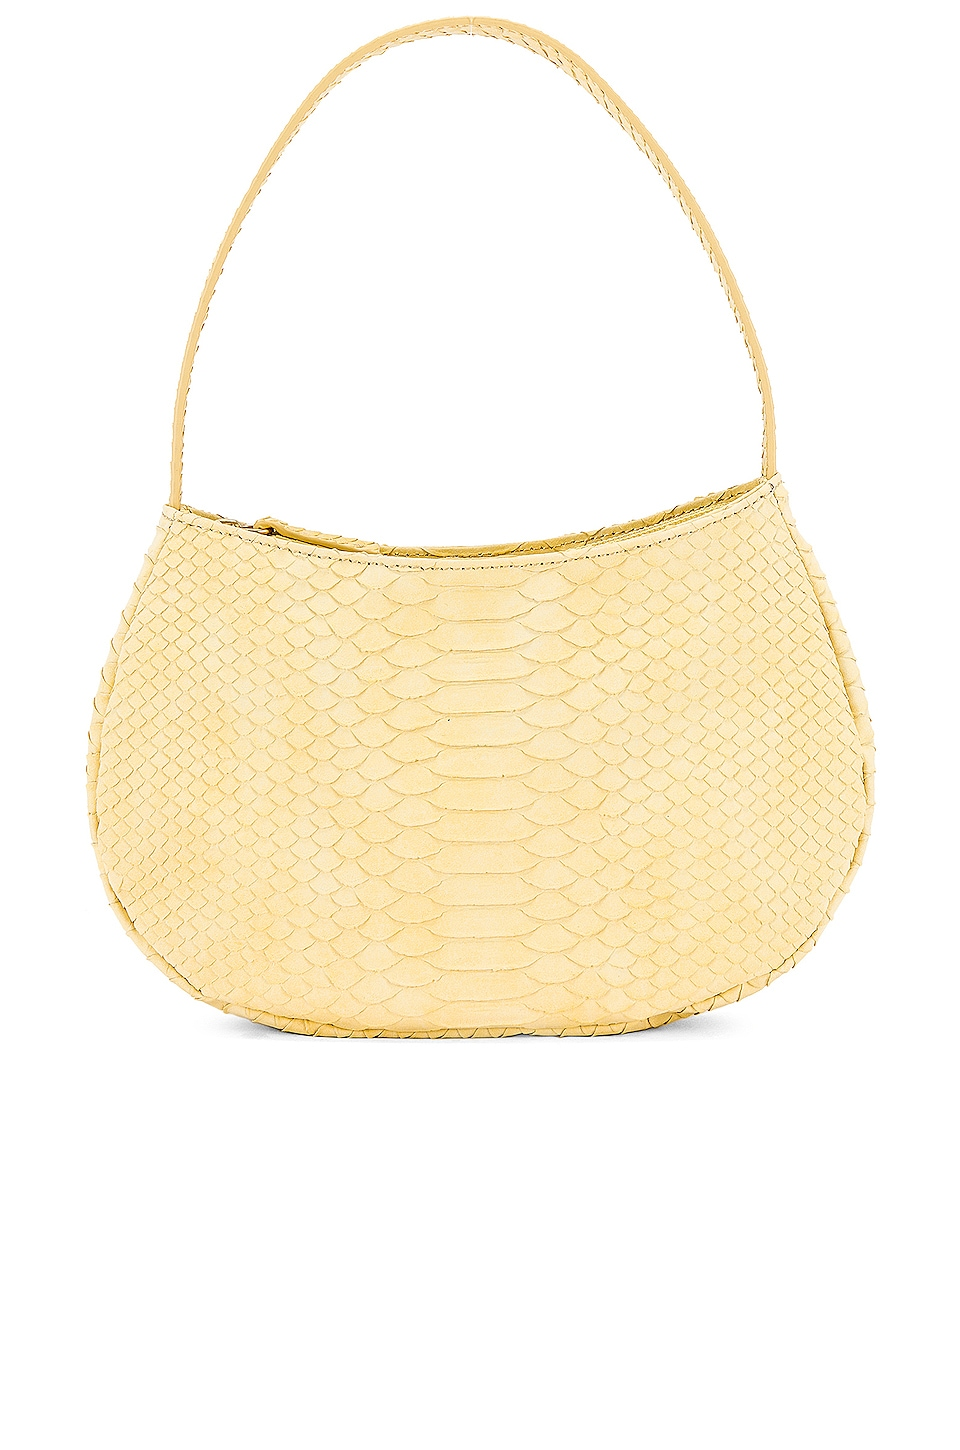 LPA Ciana Purse in Yellow